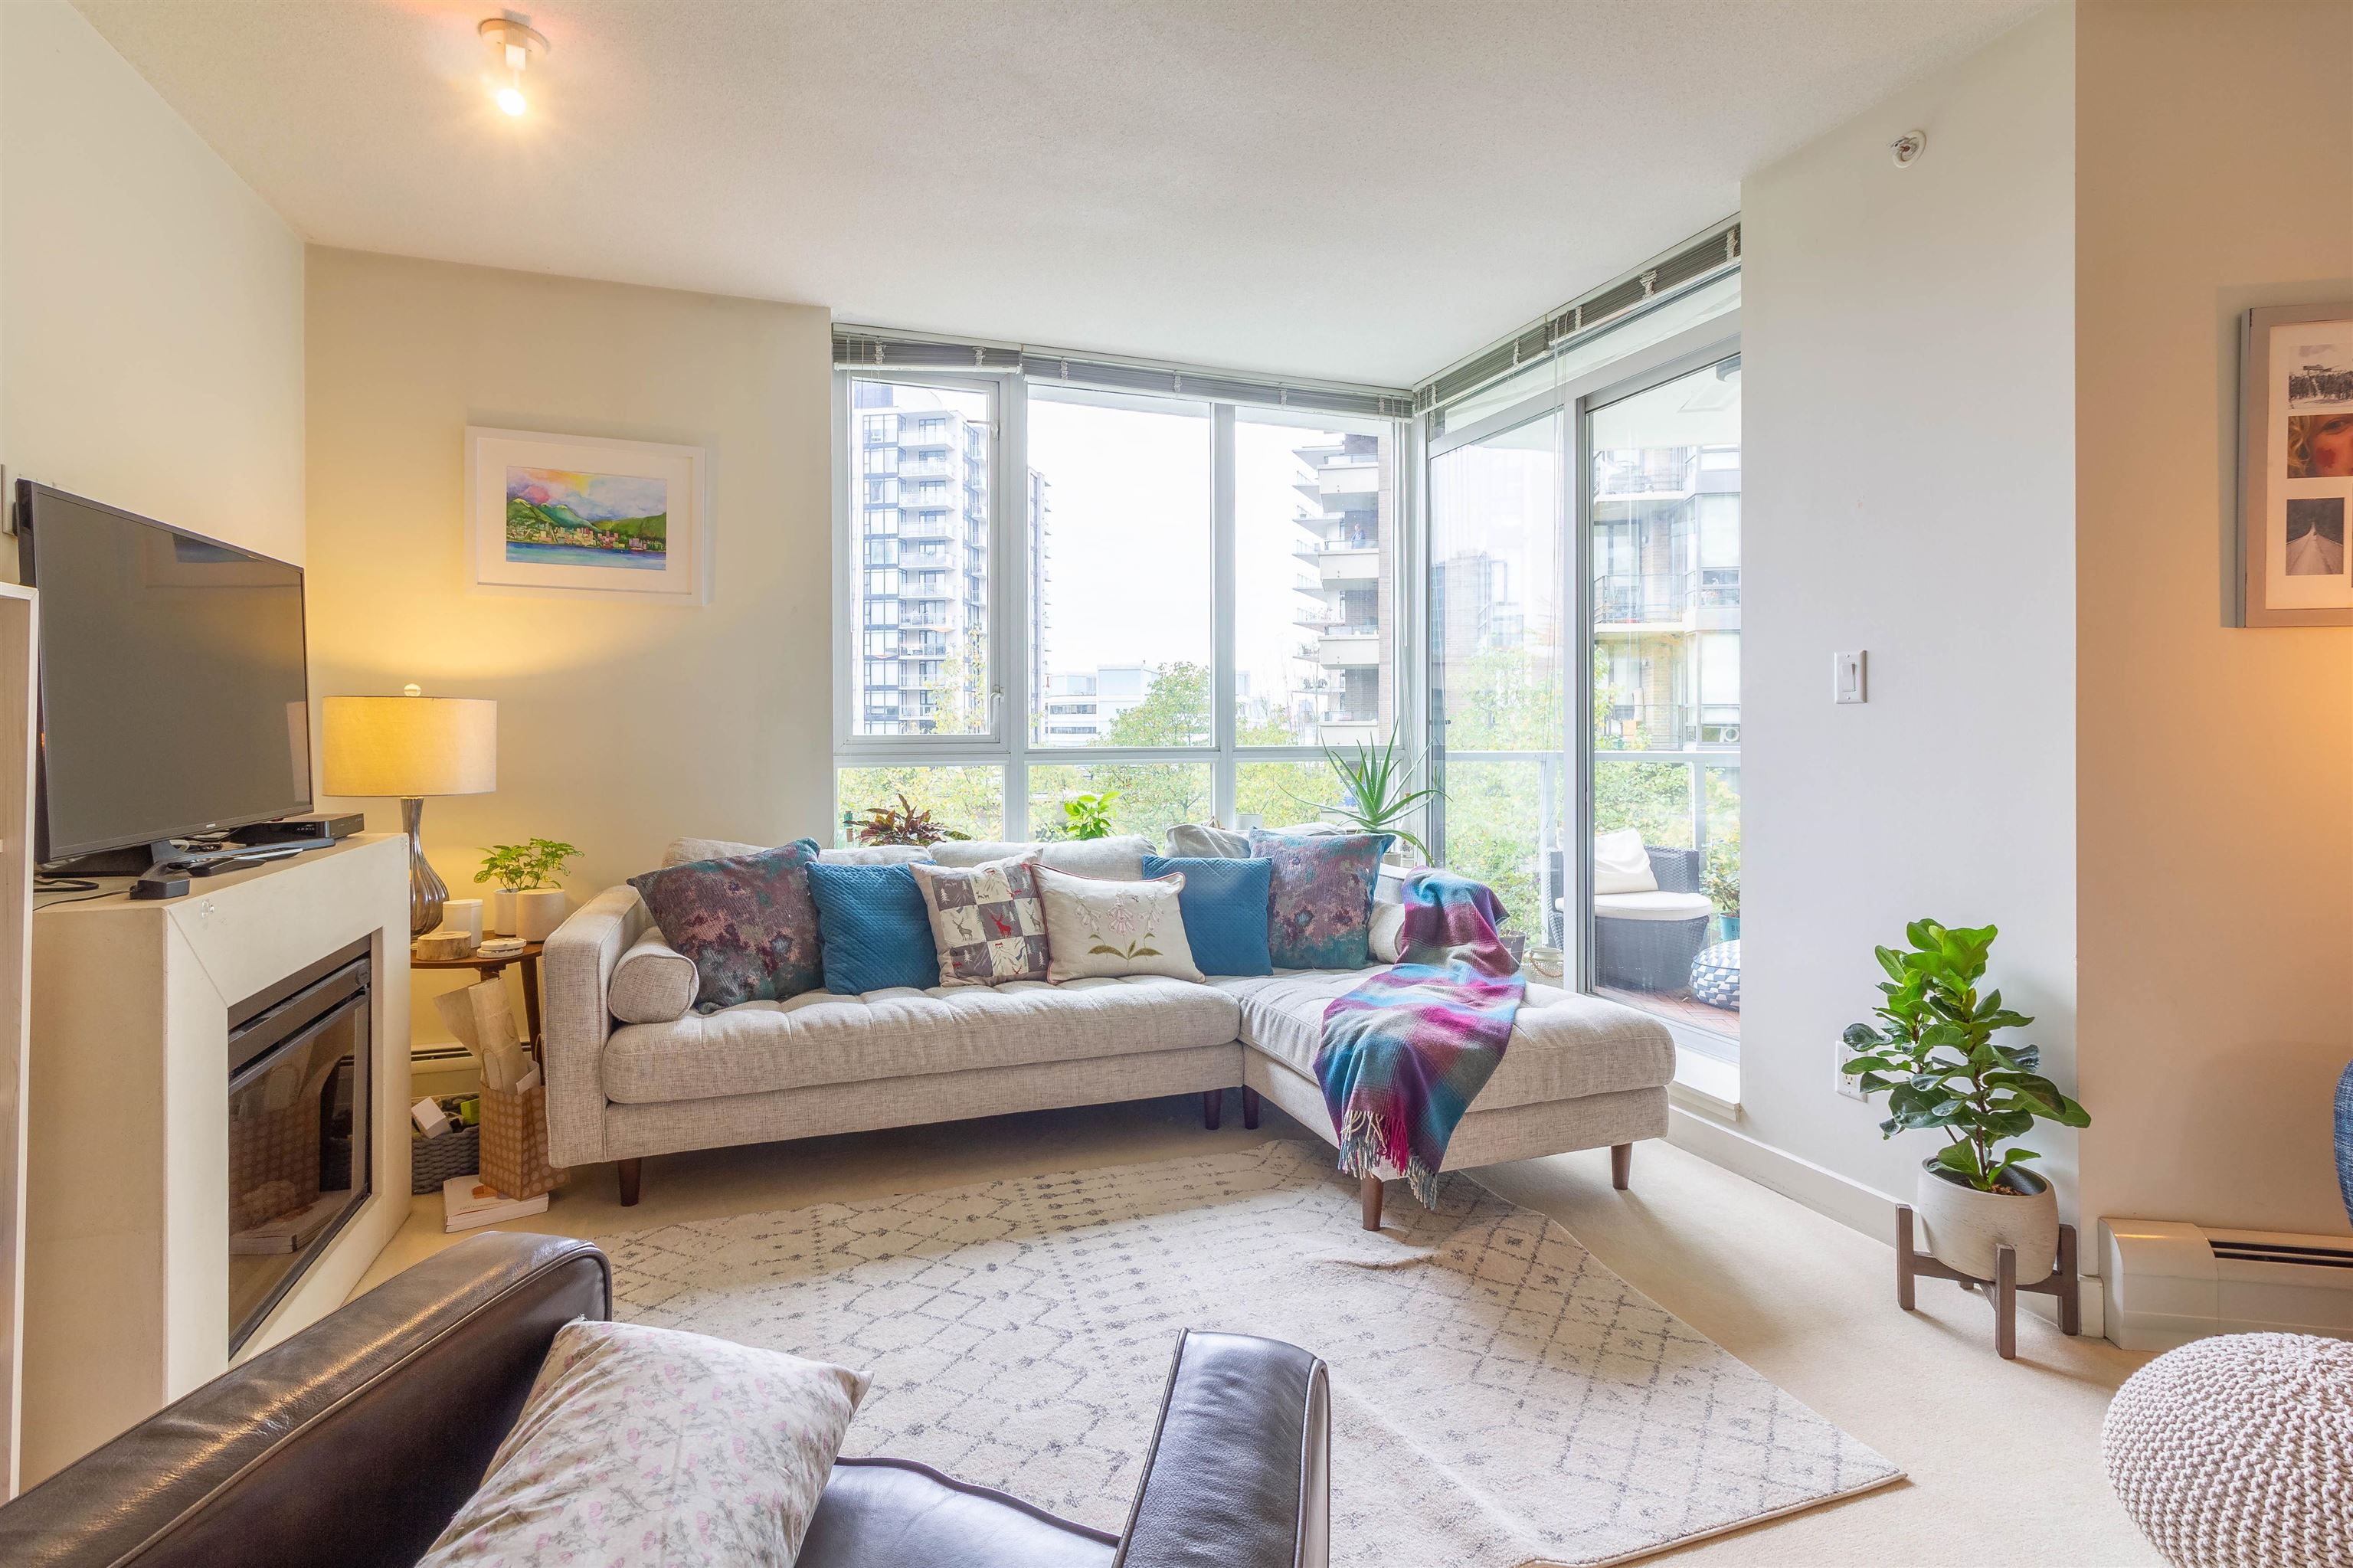 208 175 W 2ND STREET - Lower Lonsdale Apartment/Condo for sale, 1 Bedroom (R2625562) - #3